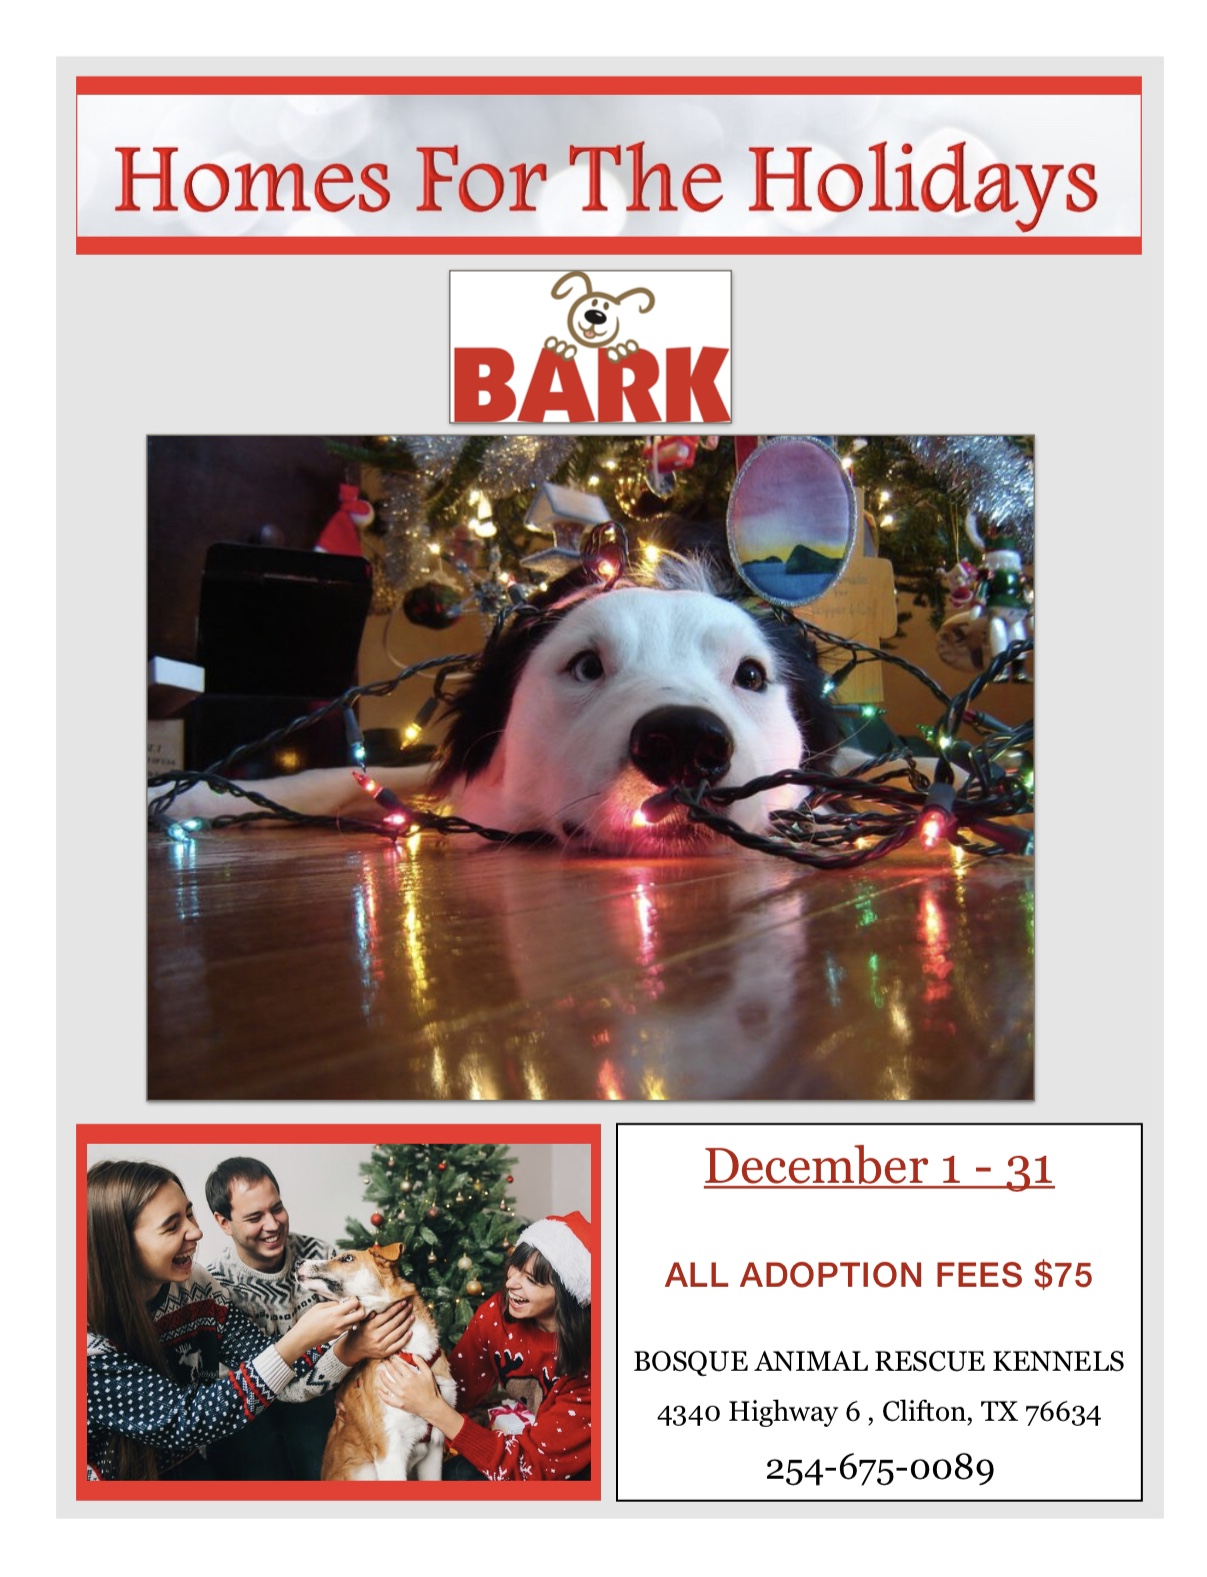 2018 BARK Home for the Holidays